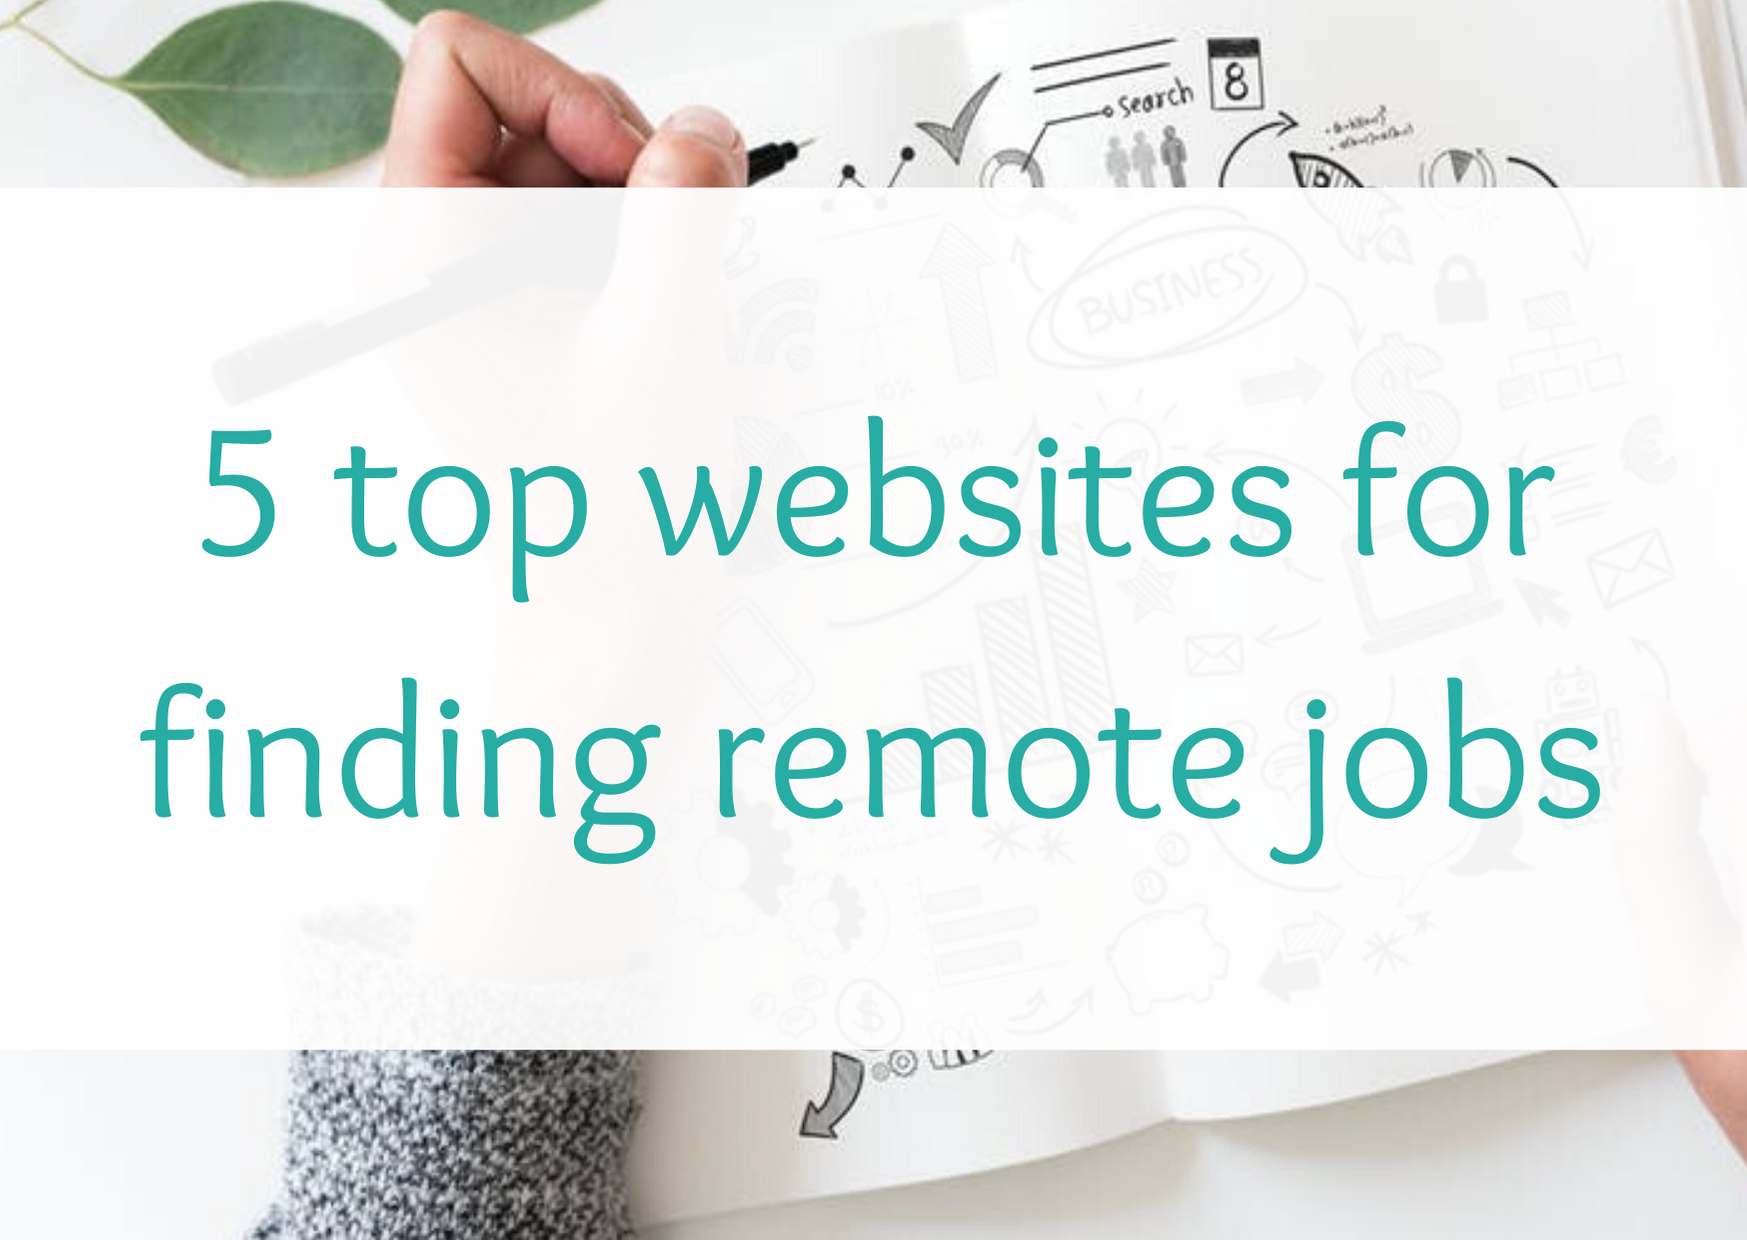 5 top websites for finding remote jobs